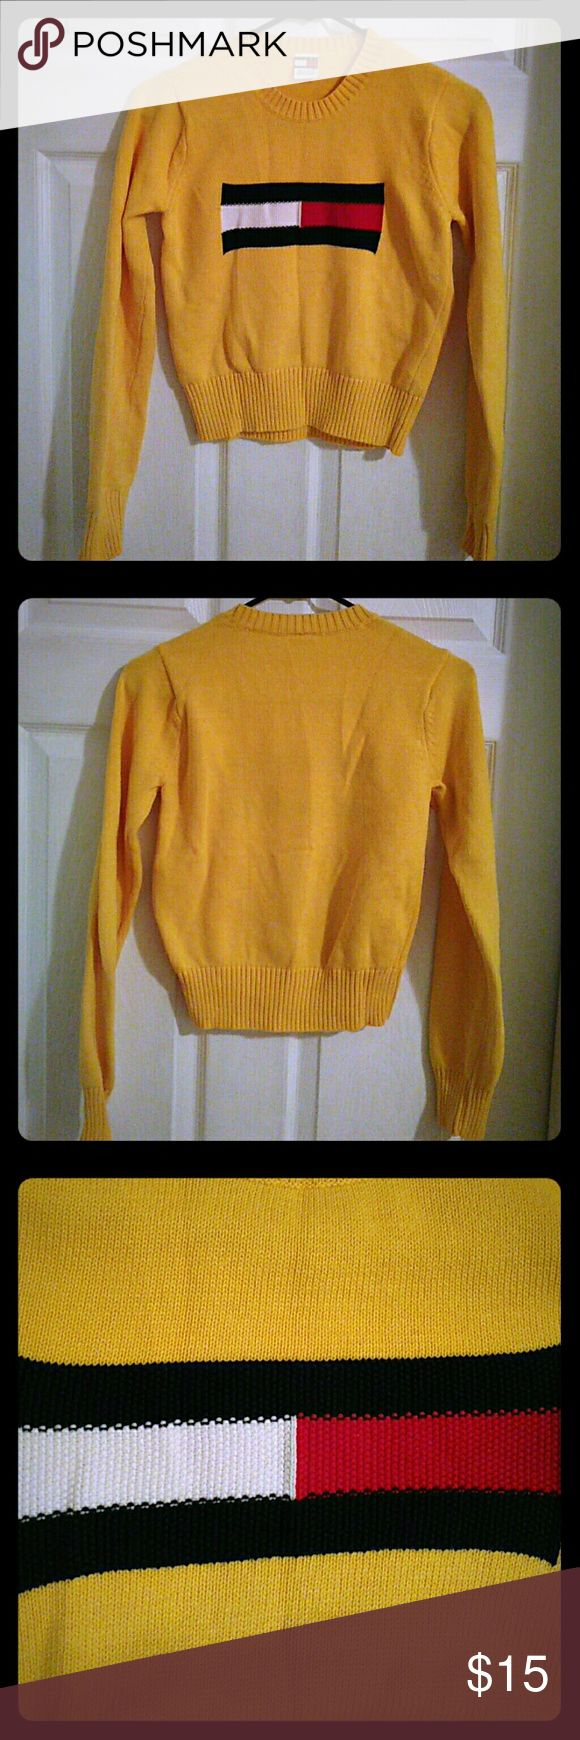 Tommy Hilfiger petite sweater This one particular sweater is more like an XS for an adult female, and M for girls aged between 7-10. In great condition! Worn once! Like new! Tommy Hilfiger Sweaters